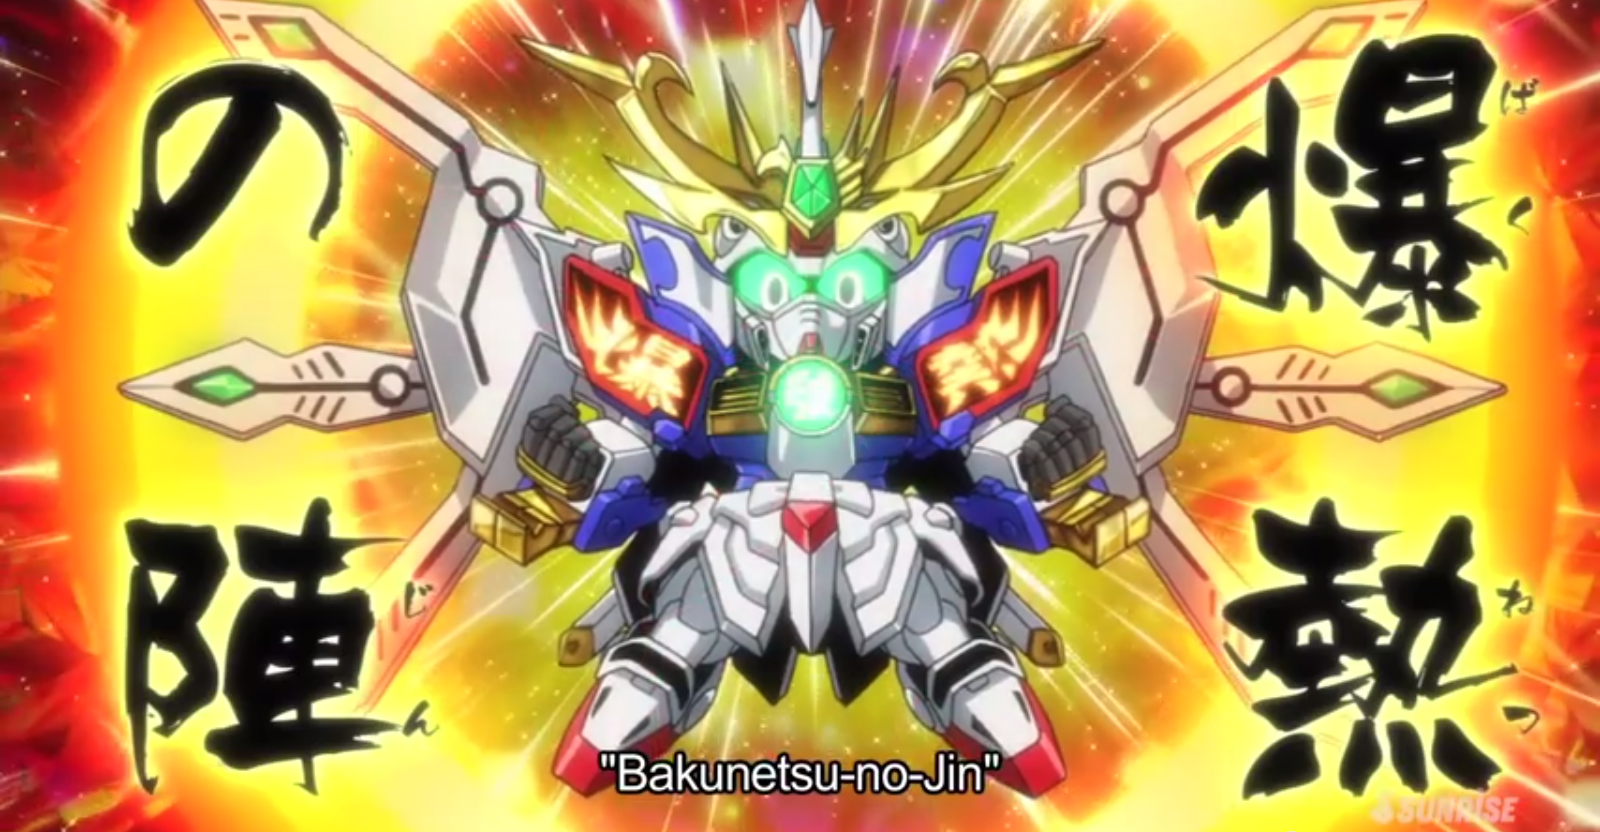 Resoconto: GUNDAM BUILD FIGHTERS TRY 4